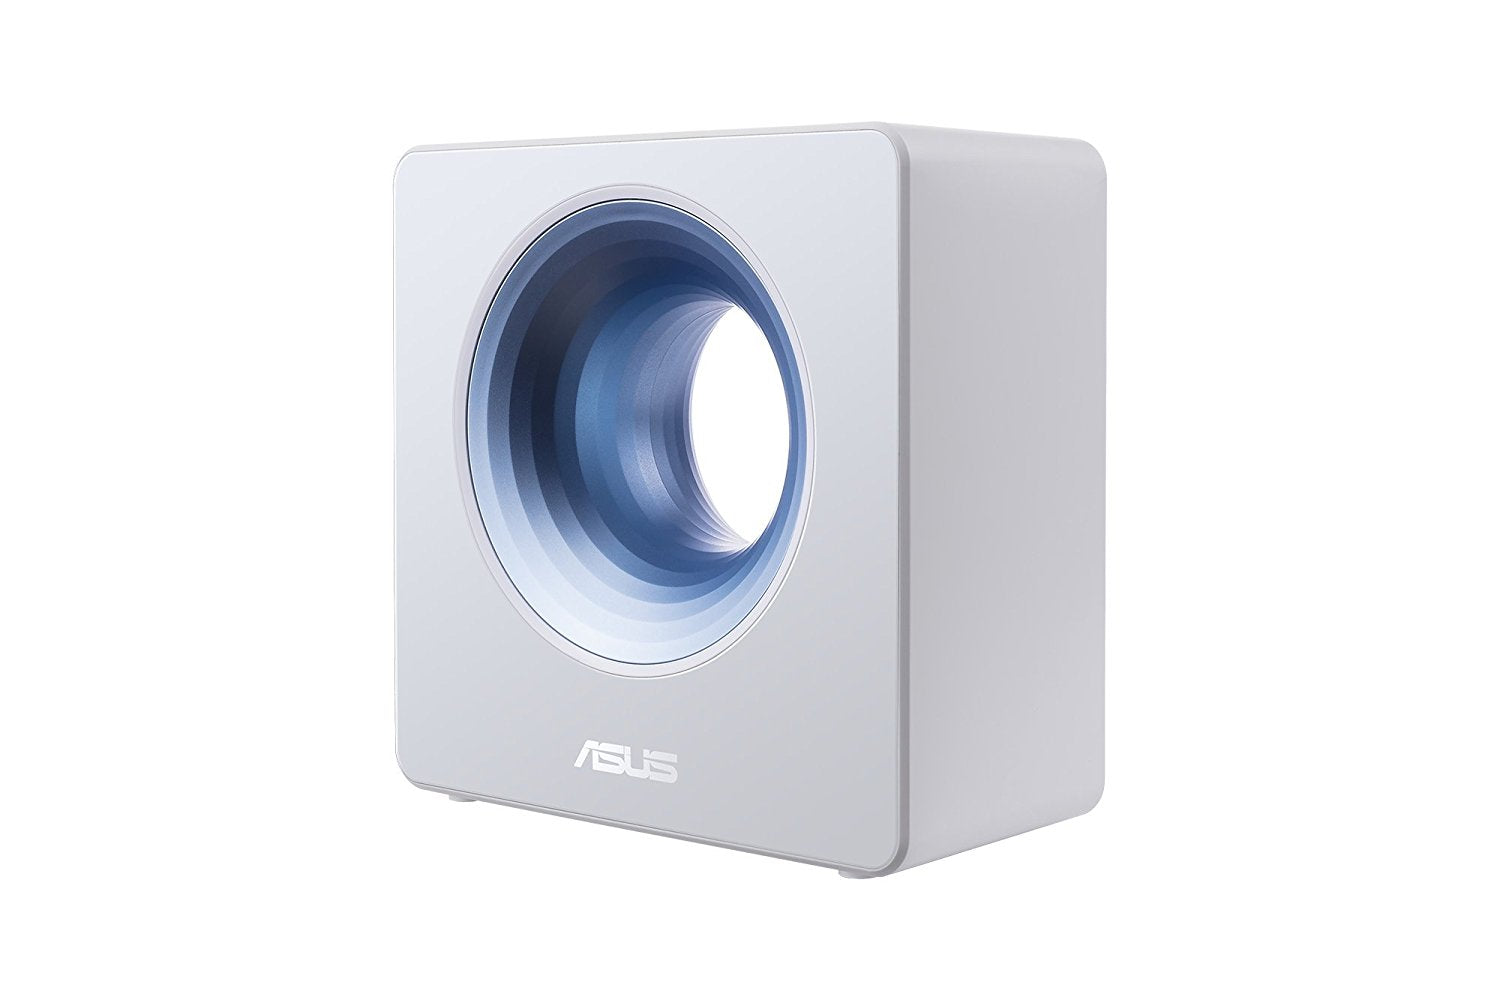 ASUS Blue Cave AC2600 Dual-Band Wireless Router for Smart Homes, featuring Intel